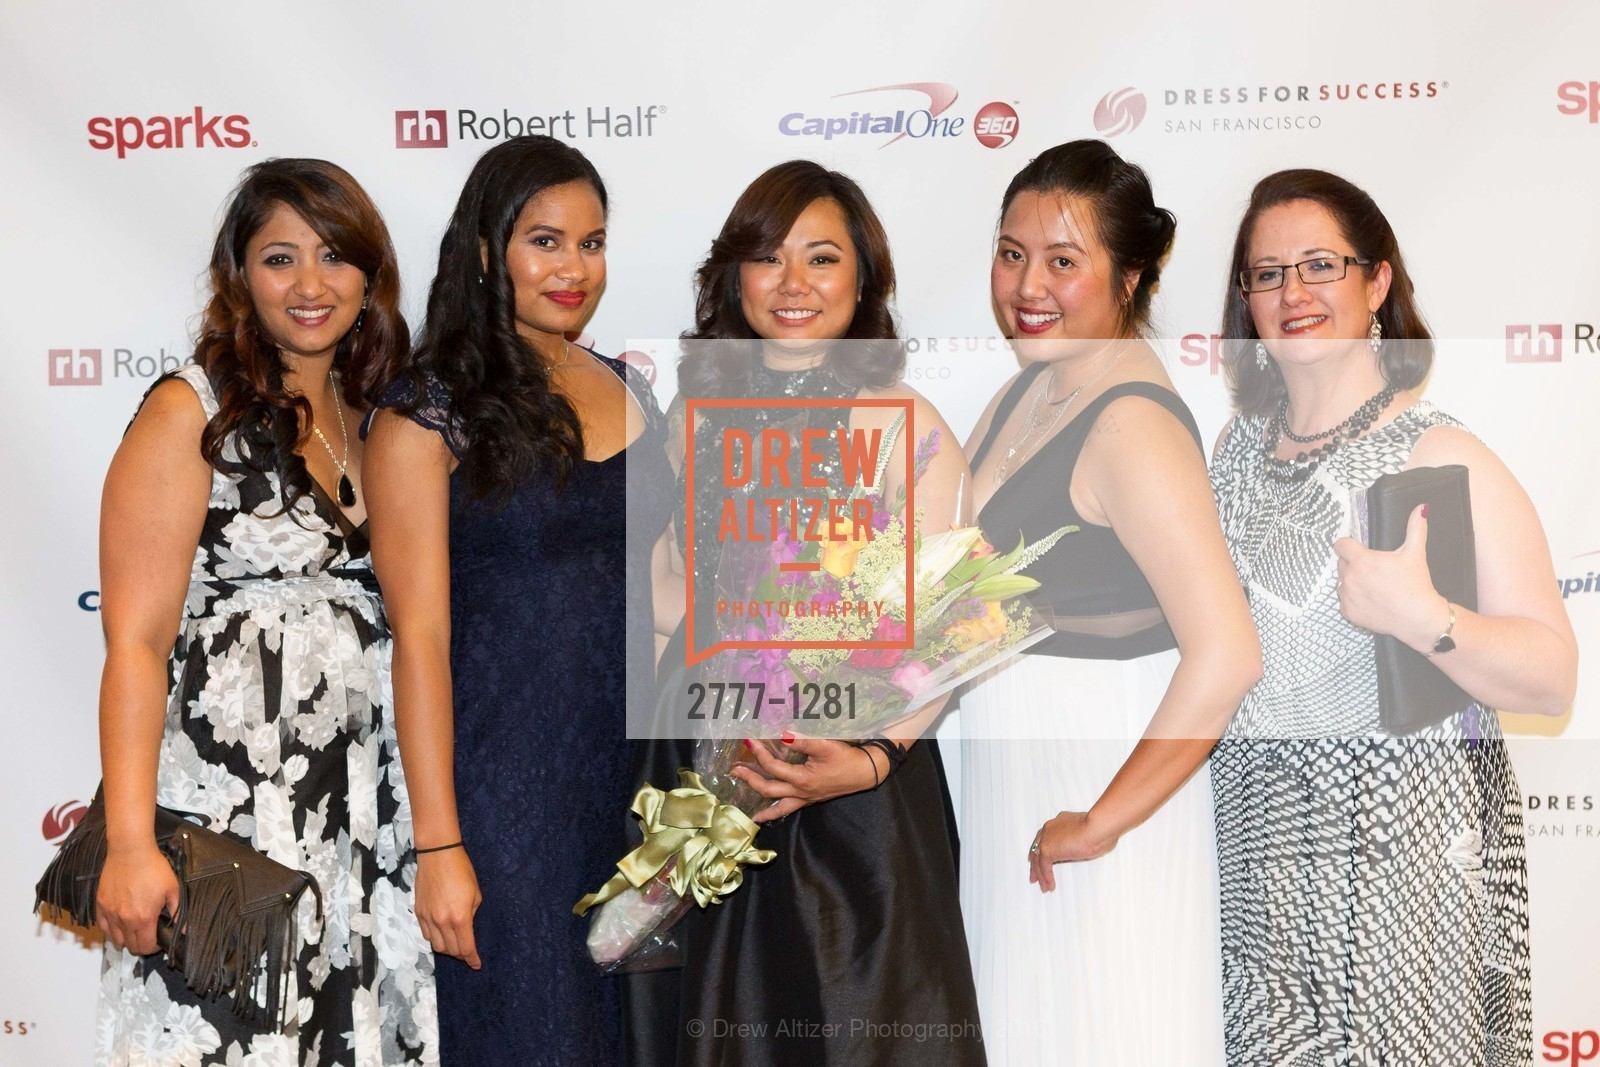 Ashica Singh, Christina Herschel, Madison Kaviyakoen, Jane Wang, Denise Evans, Photo #2777-1281